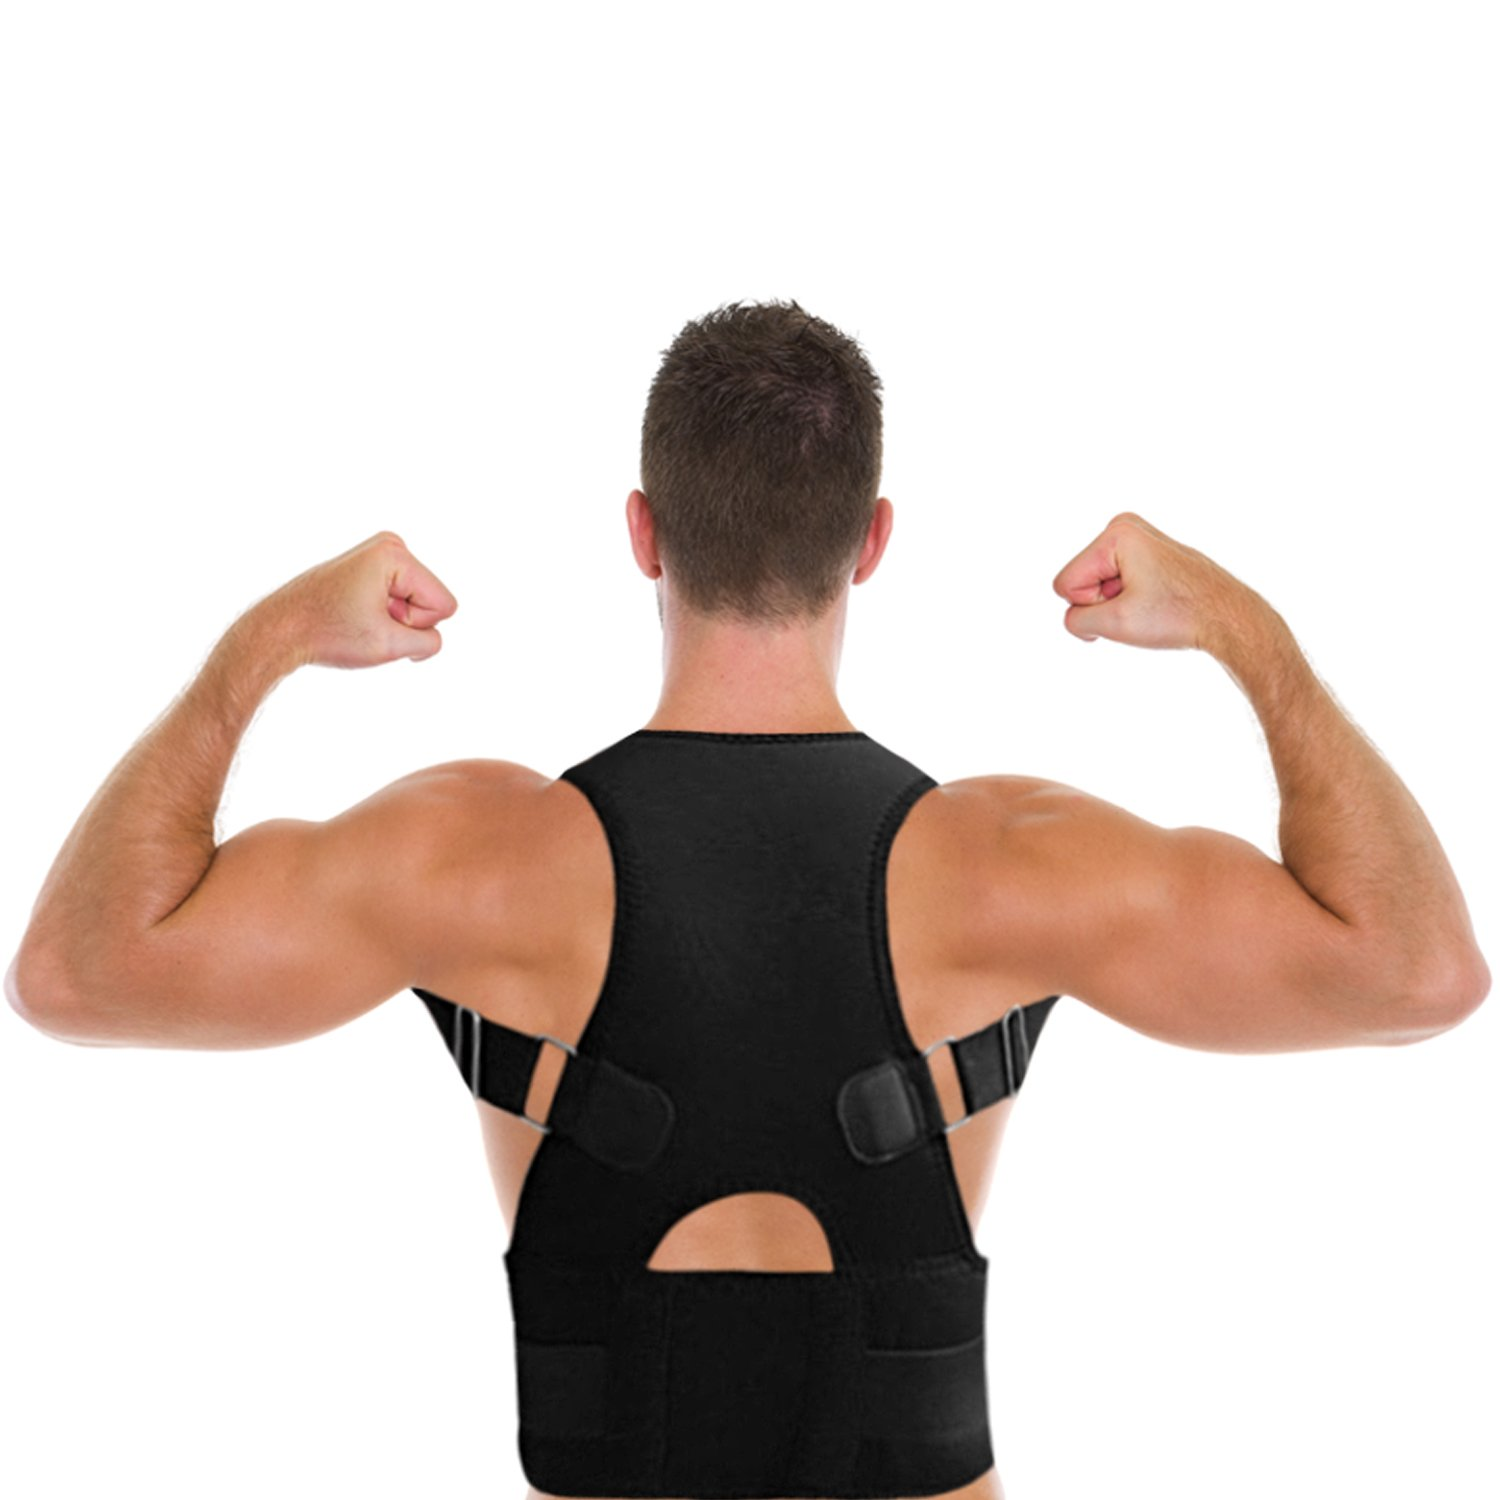 THE BEST POSTURE CORRECTOR By Lightstep (Black-X Large) Support and Brace Your Shoulders and Back Get Rid of Back, Neck and Shoulder Pain